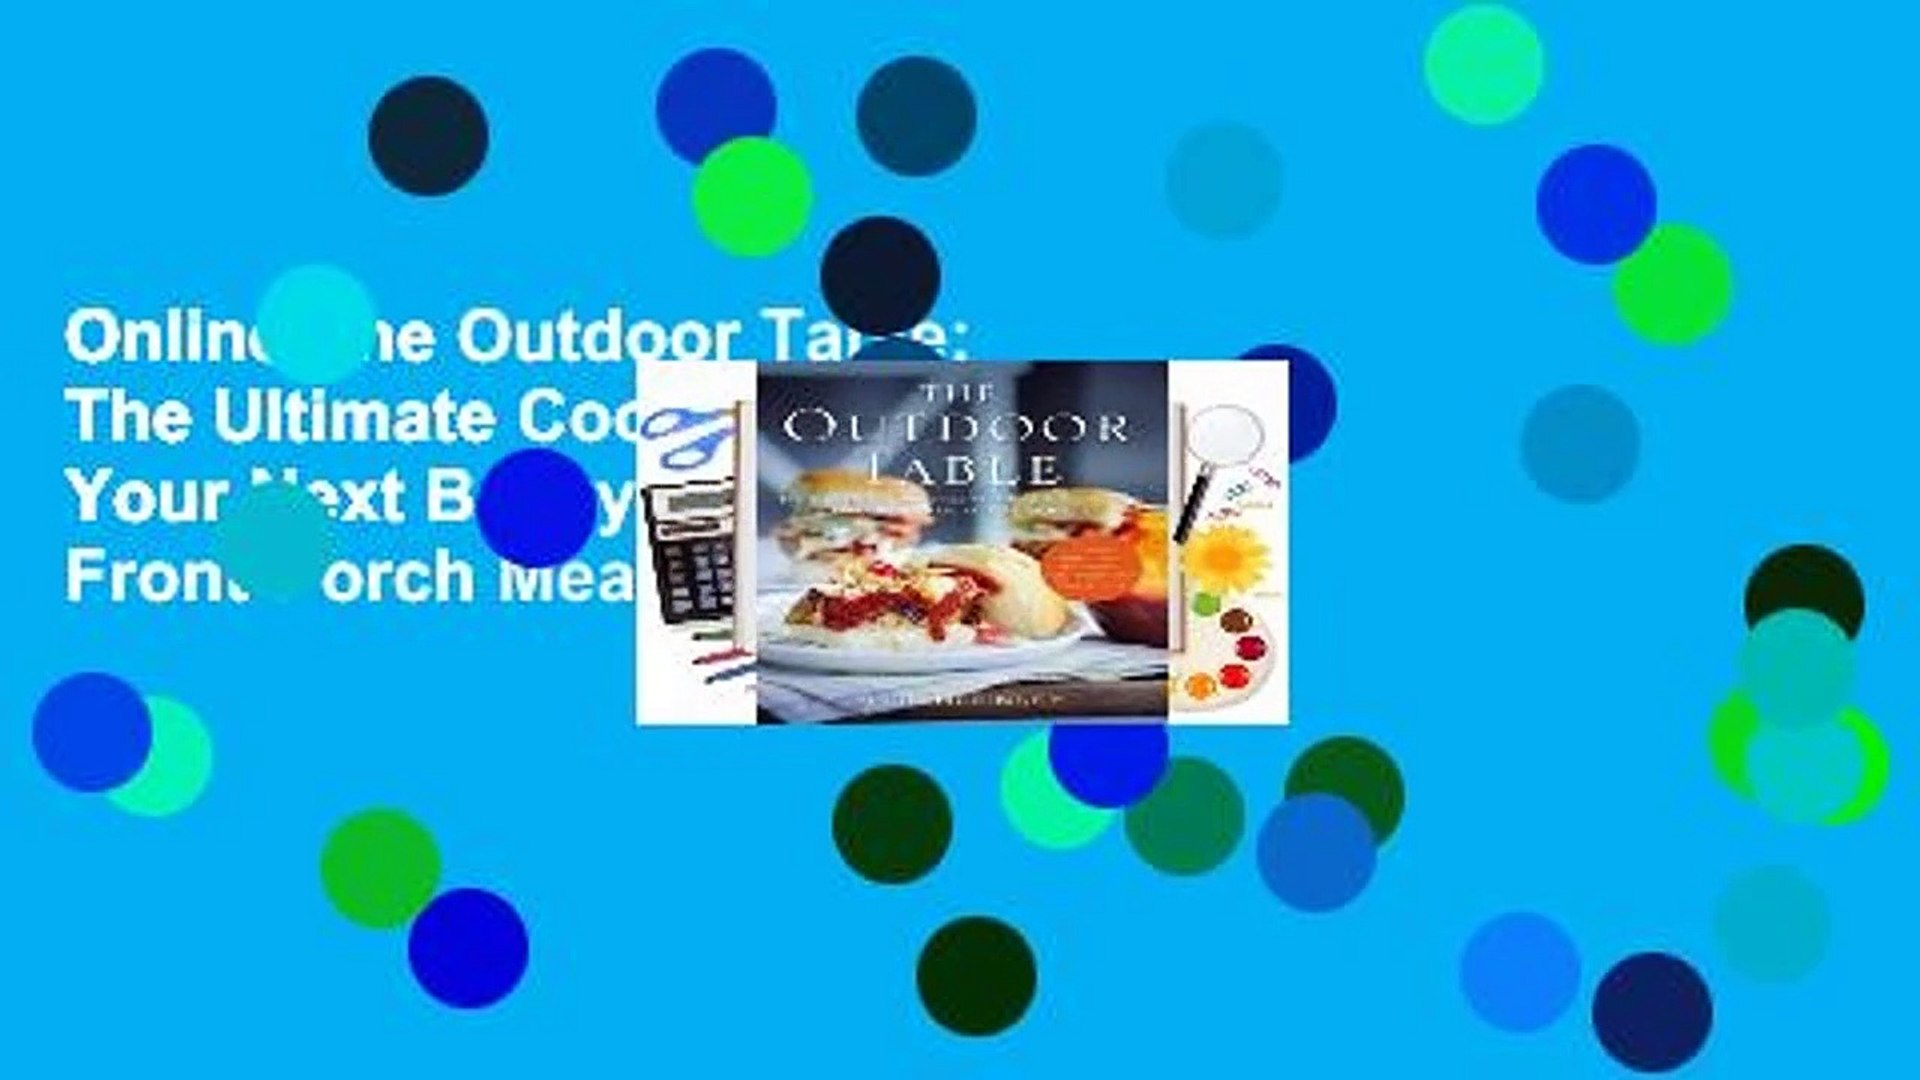 Online The Outdoor Table: The Ultimate Cookbook for Your Next Backyard BBQ, Front-Porch Meal,